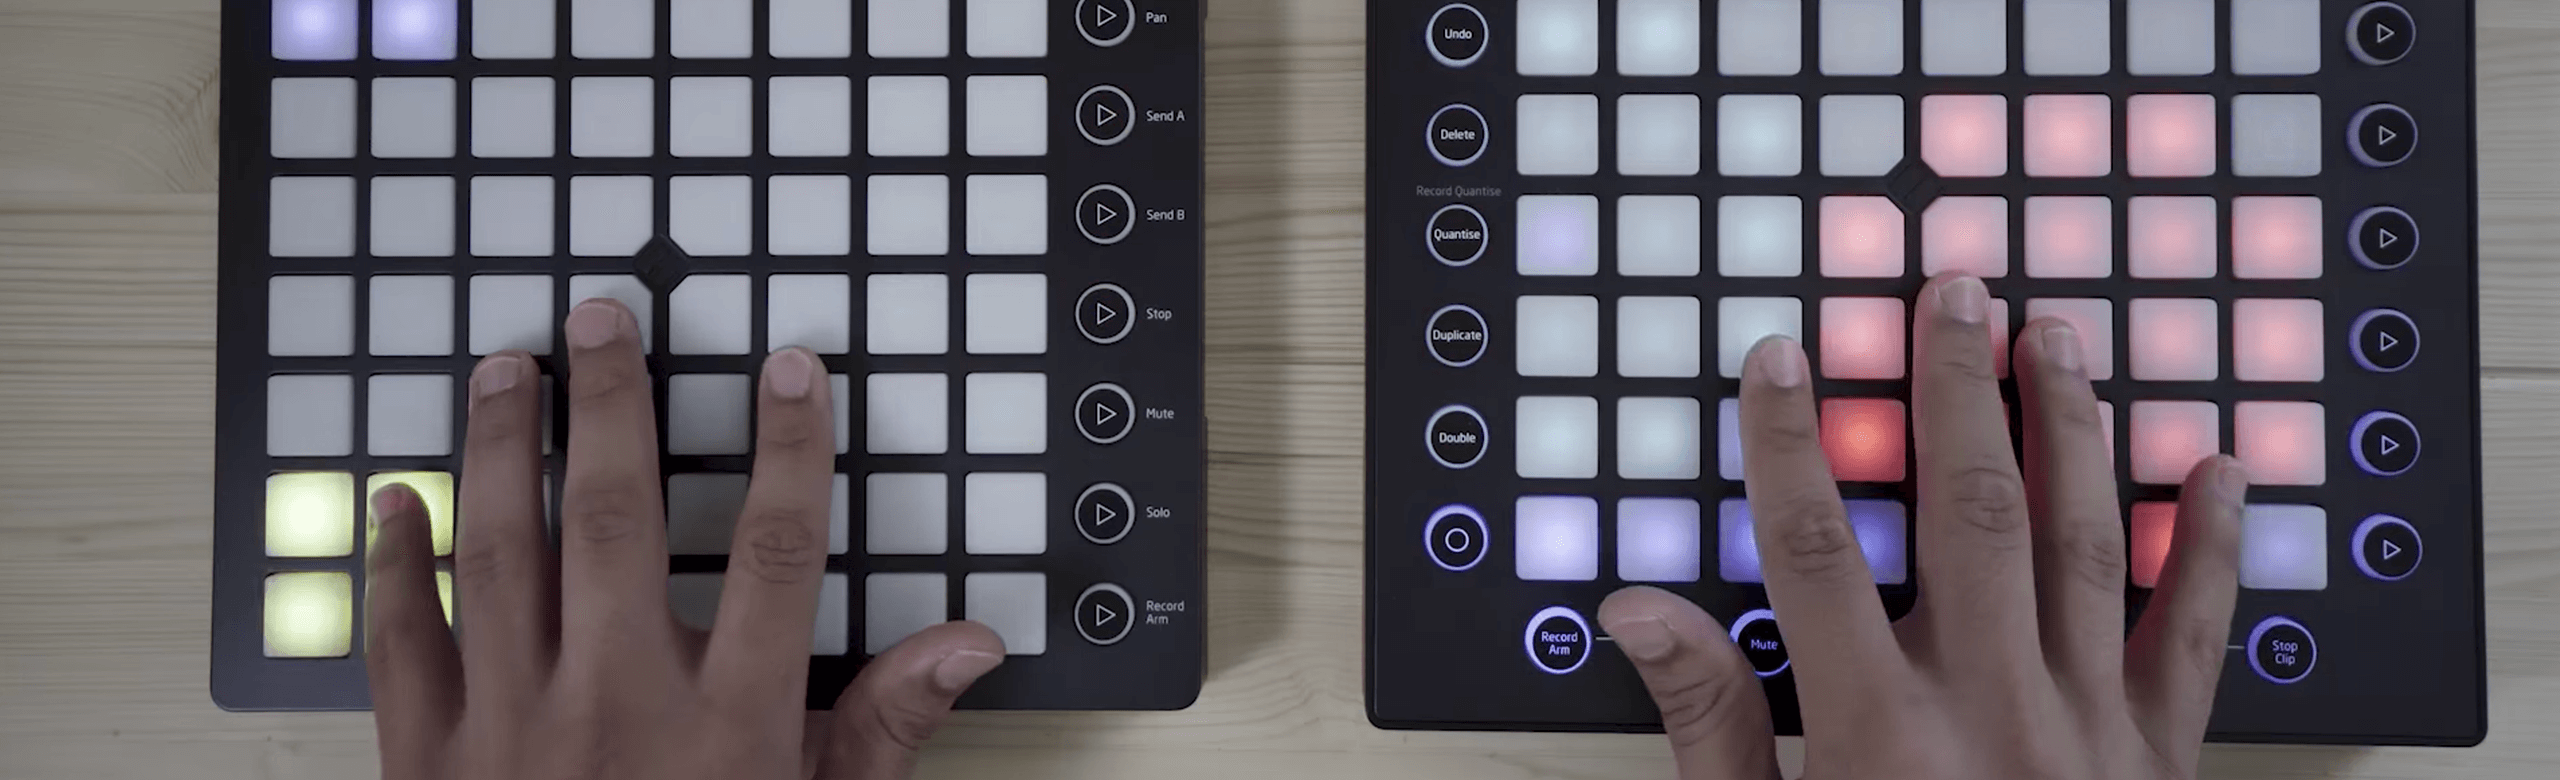 aunchpad MK2 vs Launchpad Pro - Main Differences